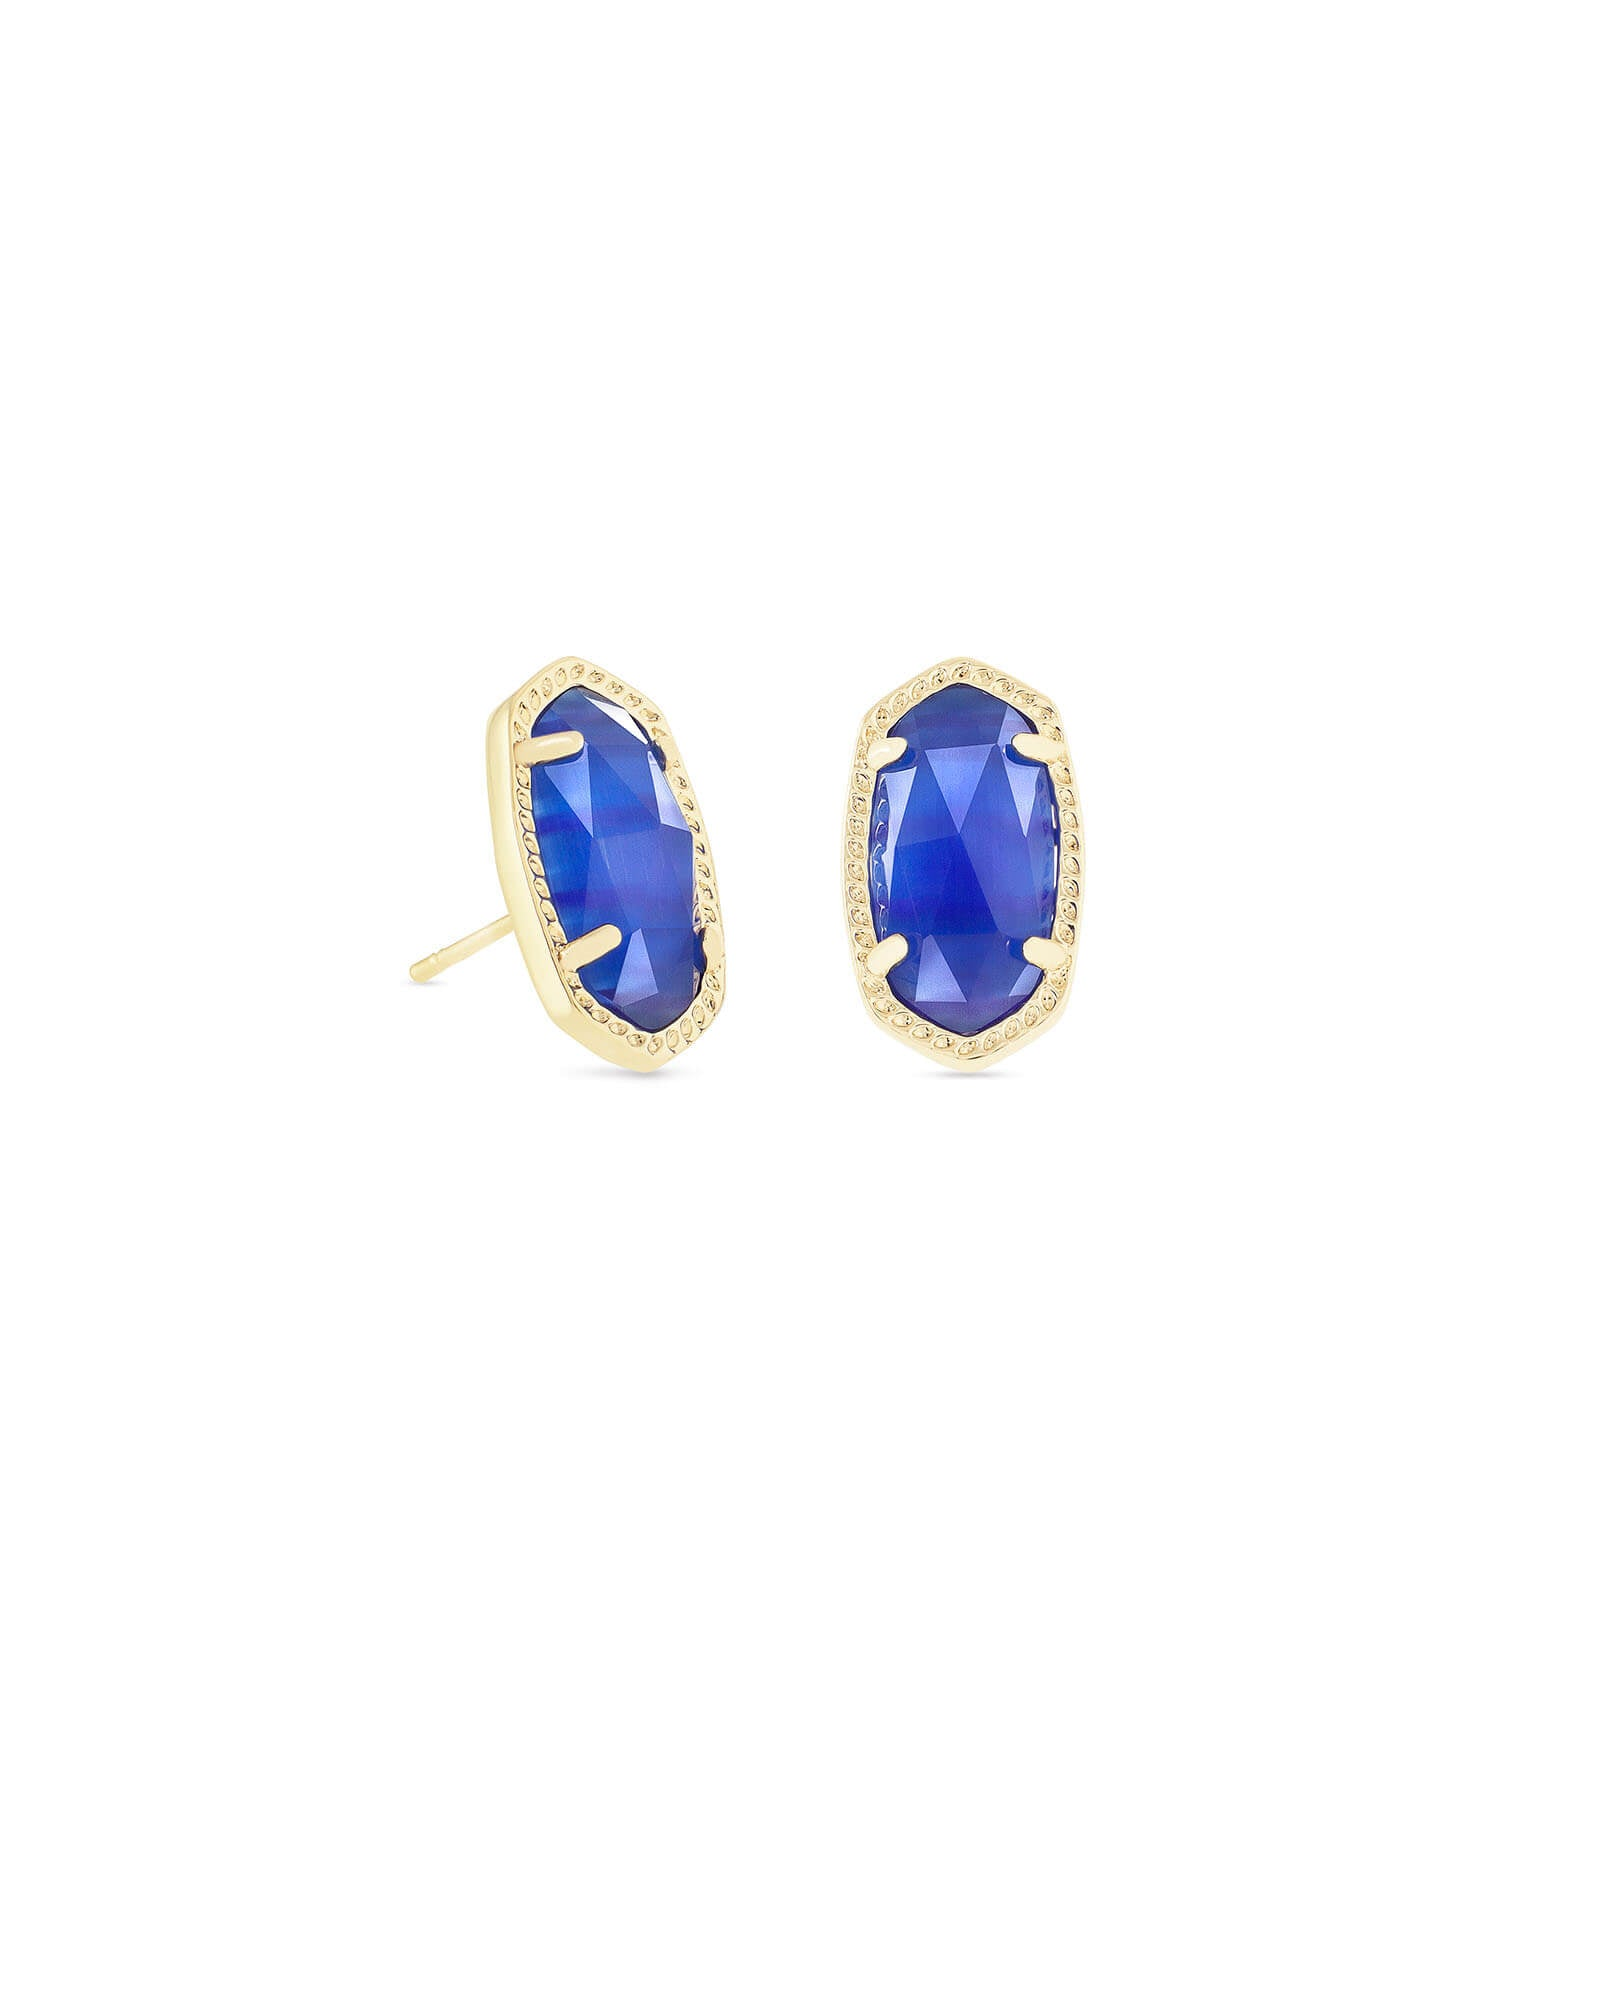 Ellie Gold Stud Earrings In Cobalt Cat's Eye